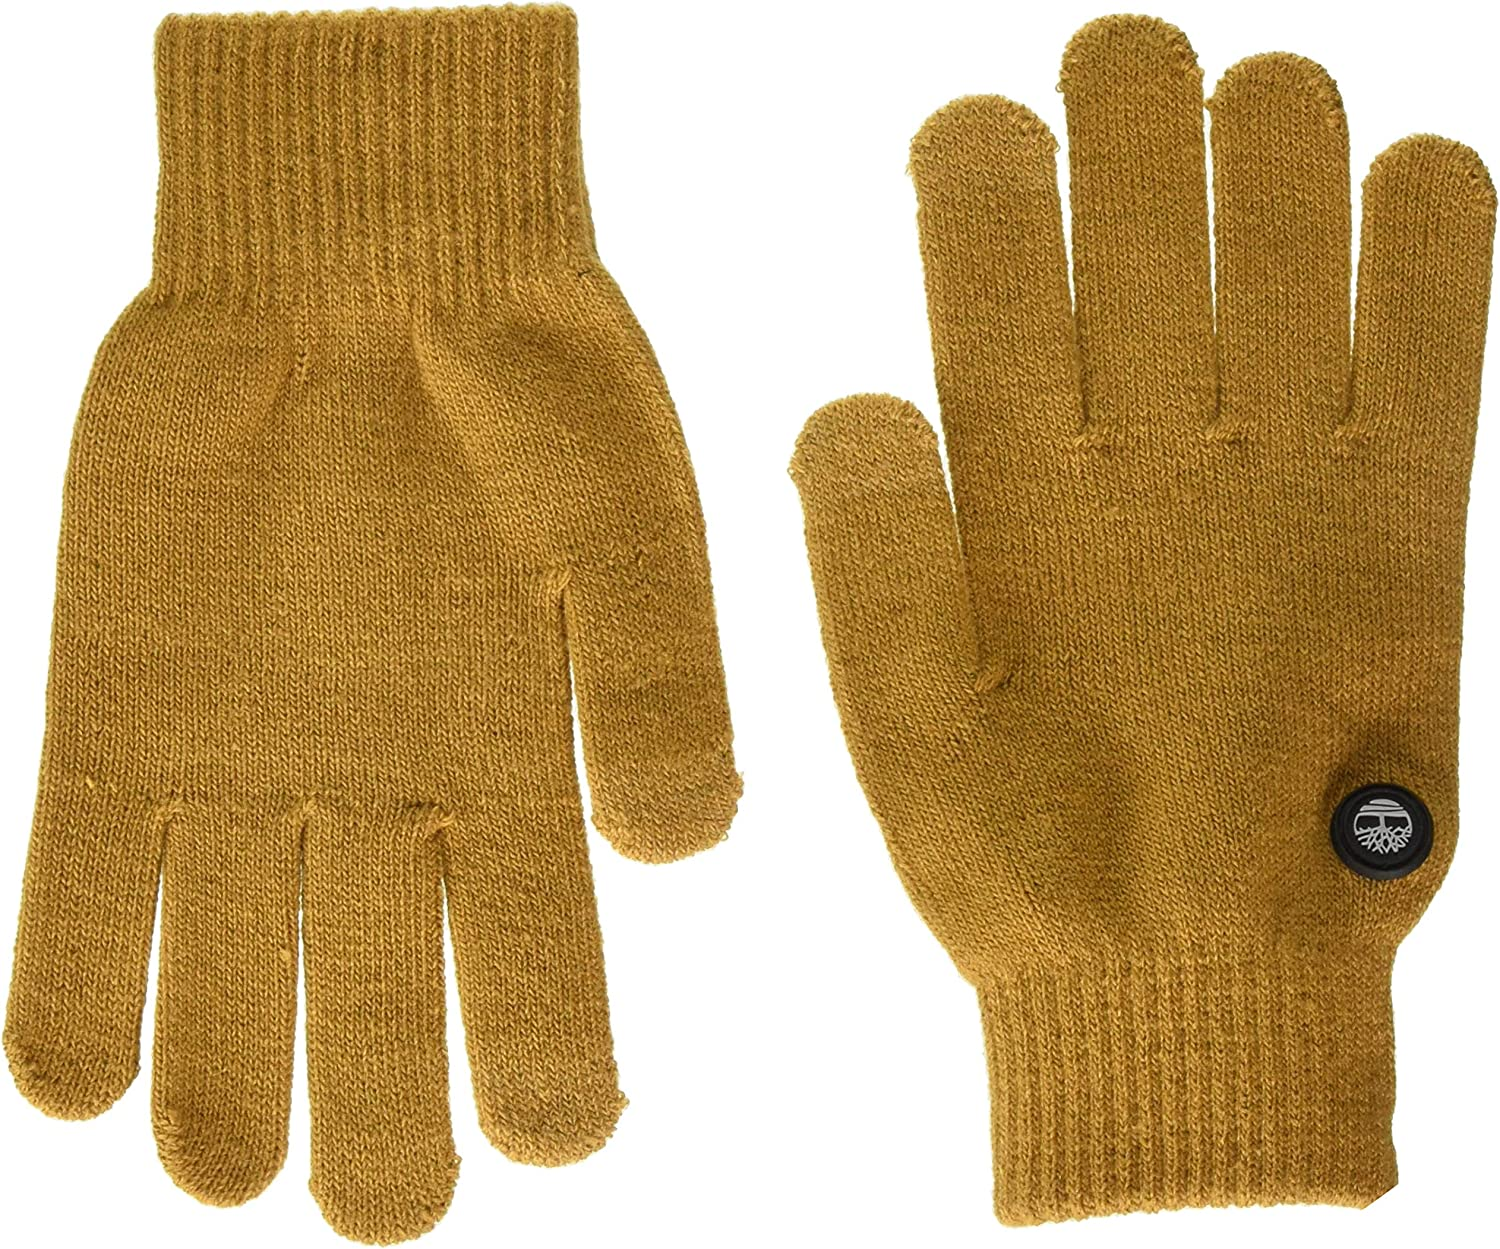 Timberland mens Magic Glove With Touchscreen Technology Cold Weather Gloves